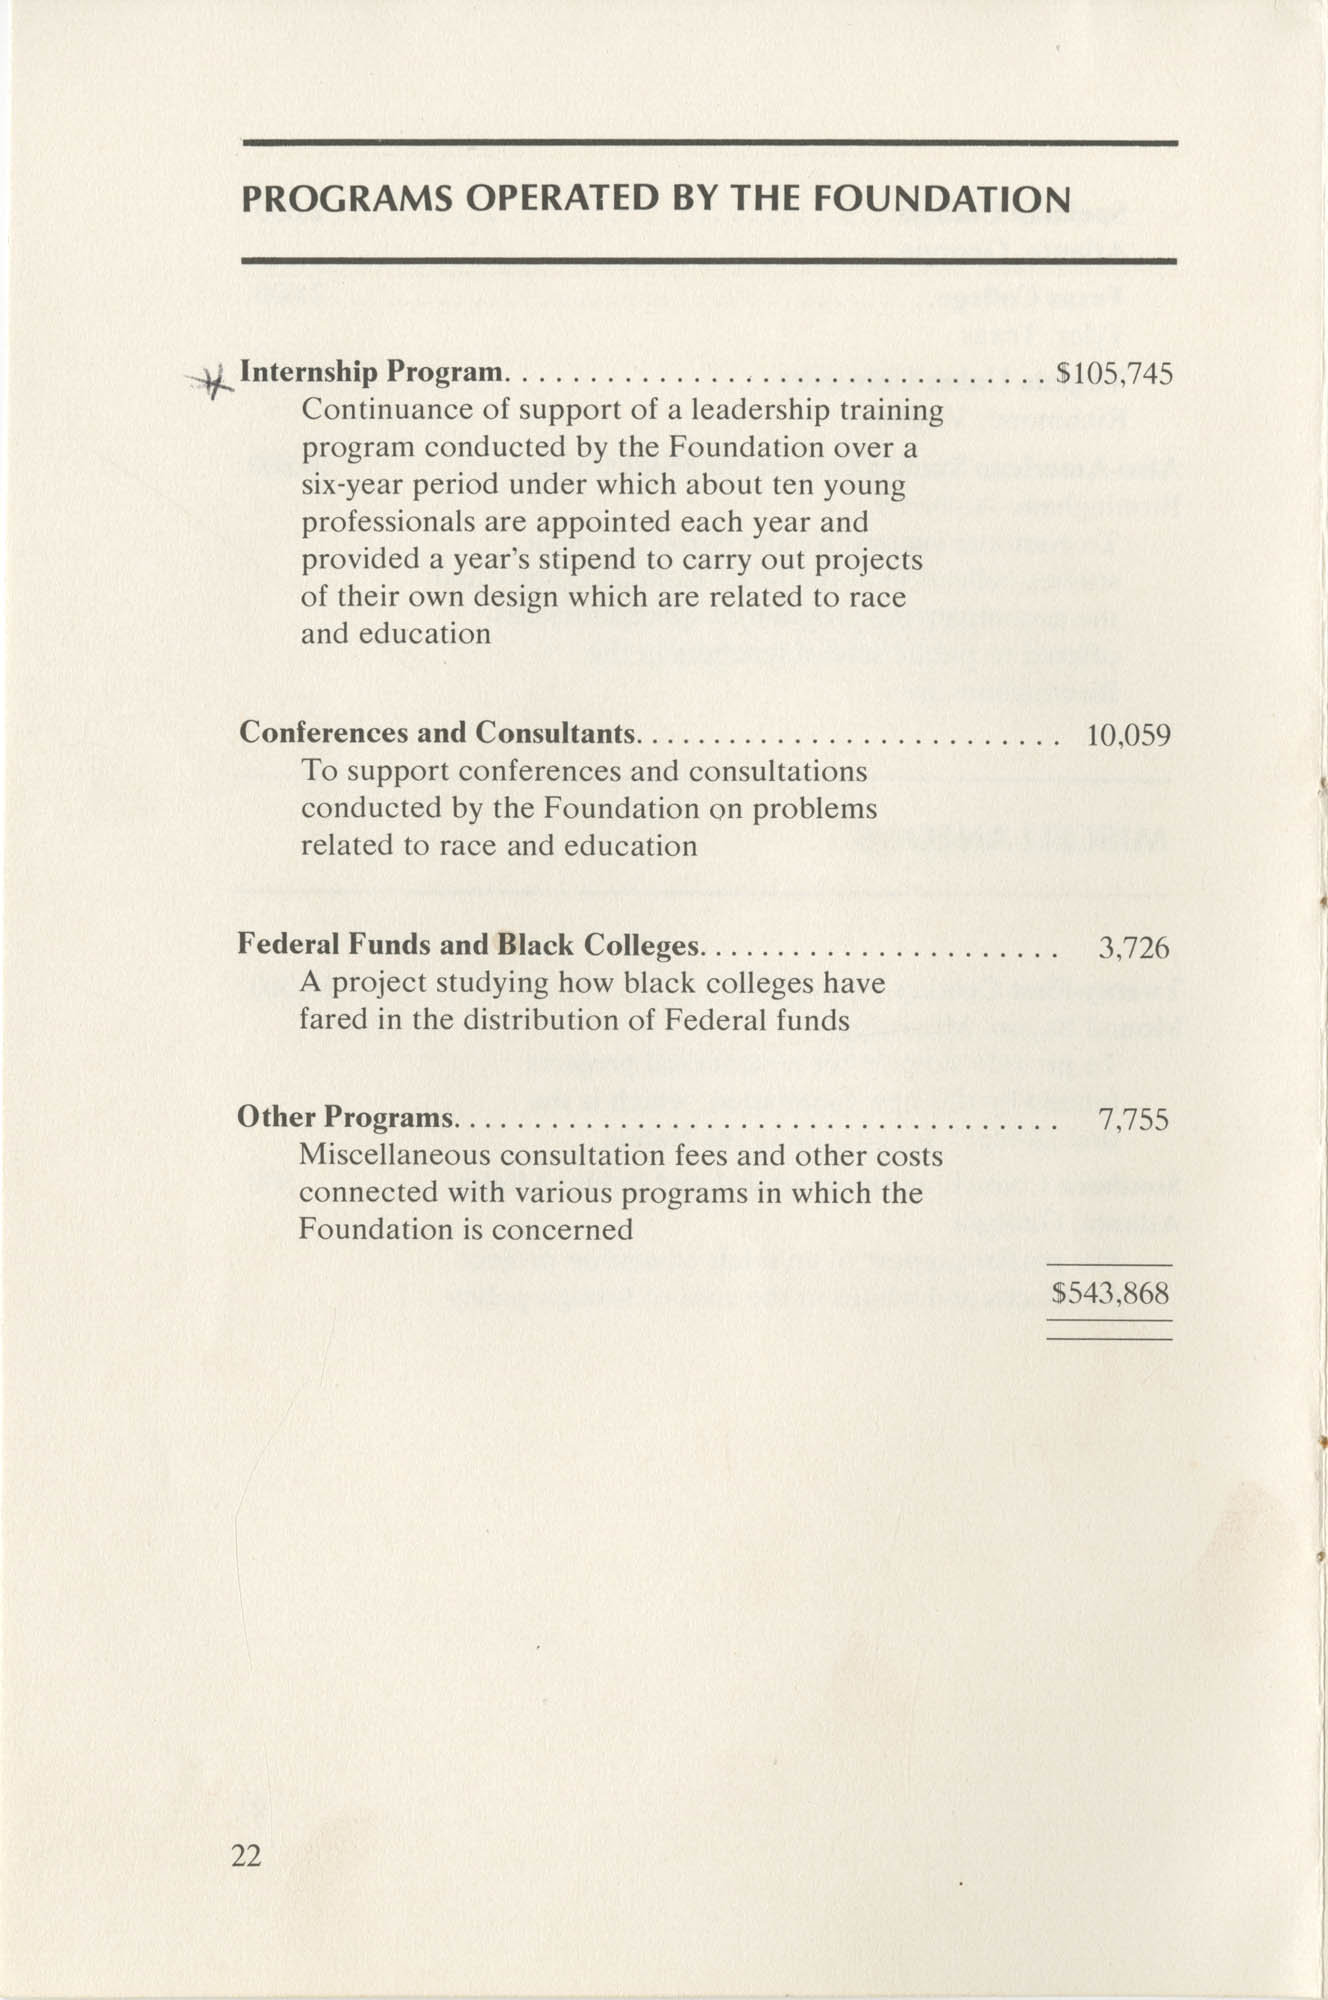 Southern Education Foundation, Annual Report 1971-1972, Page 22